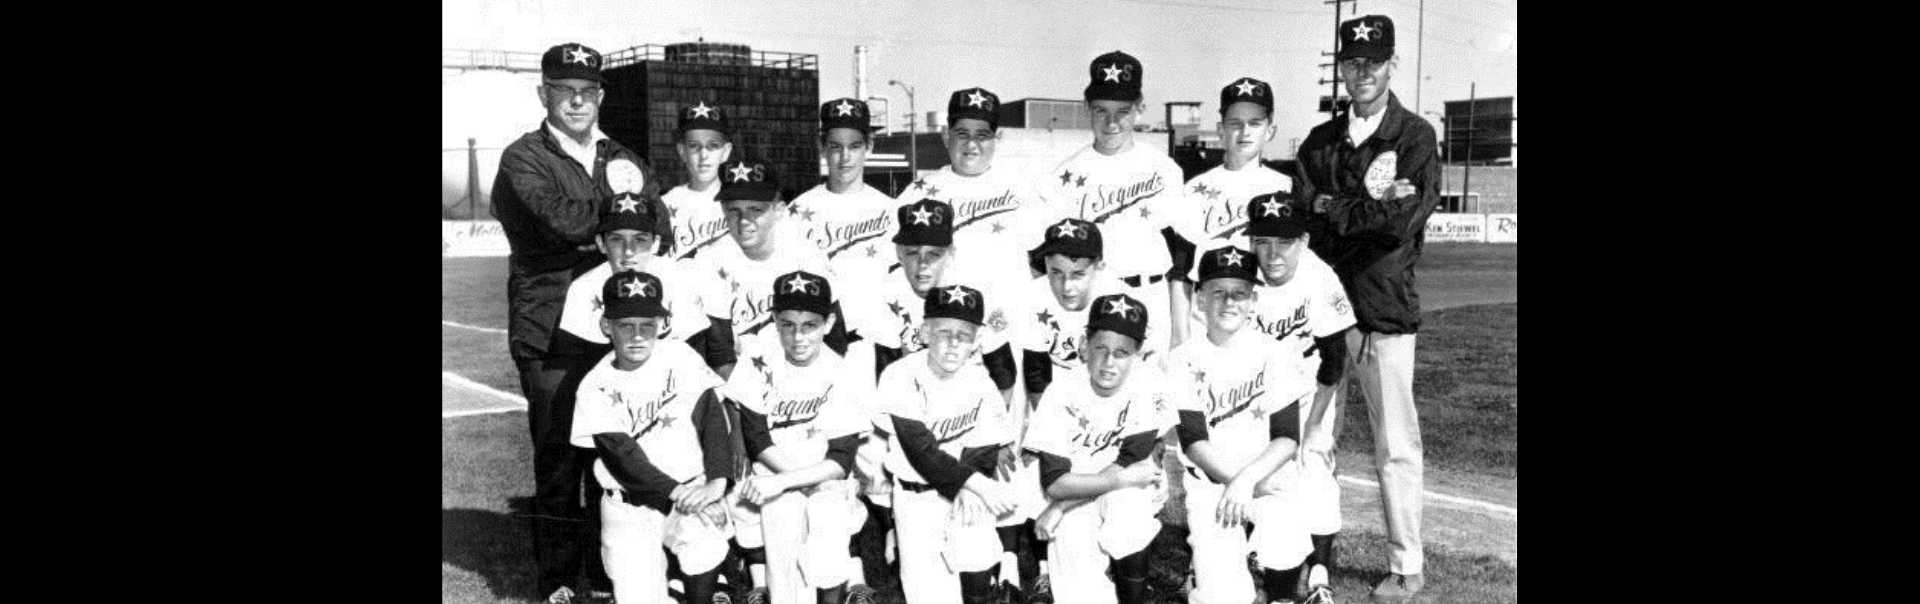 El Segundo America Little League All Stars Team 1964